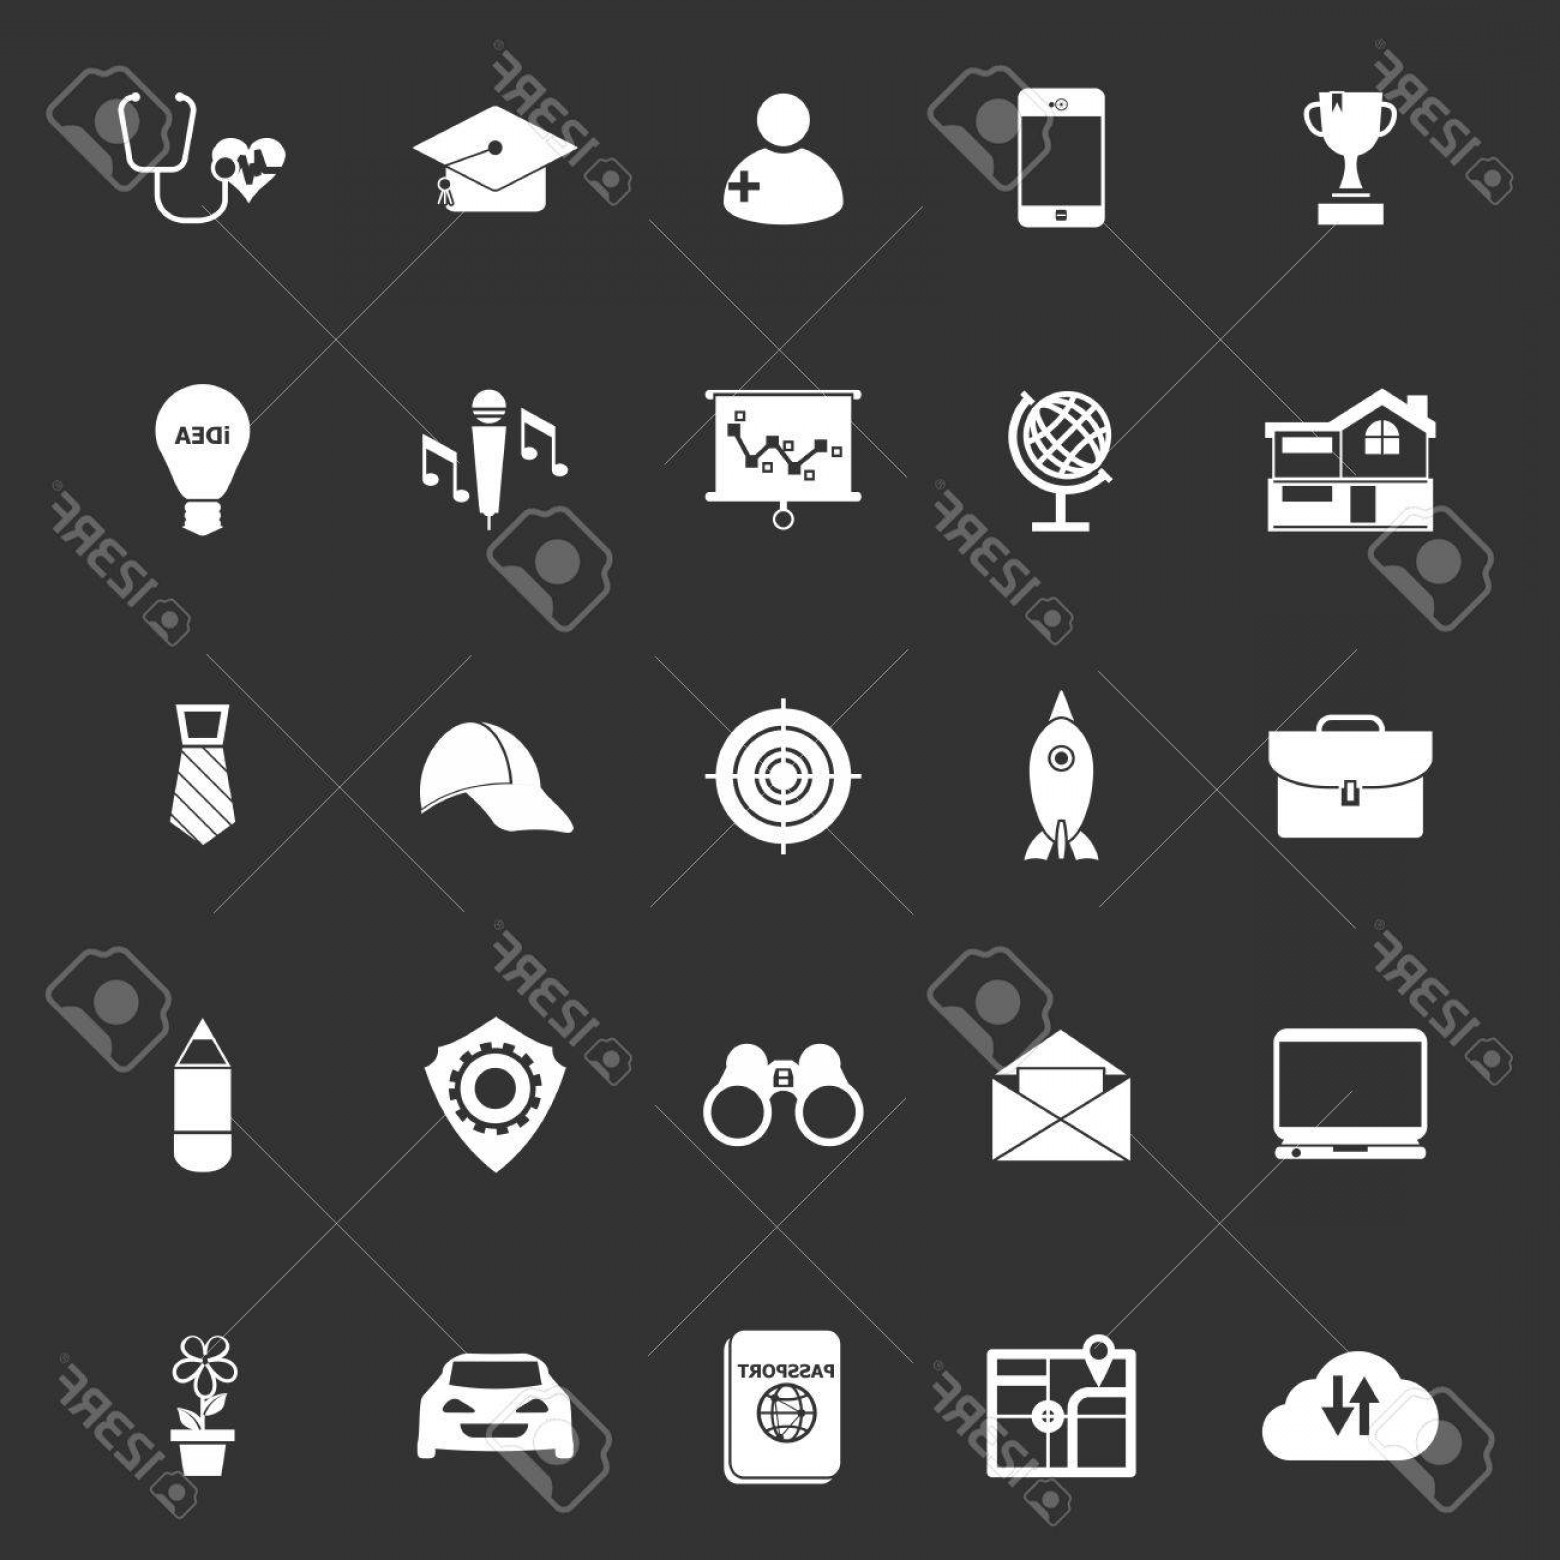 Vectors Job Description: Photostock Vector Job Description Icons On Gray Background Stock Vector